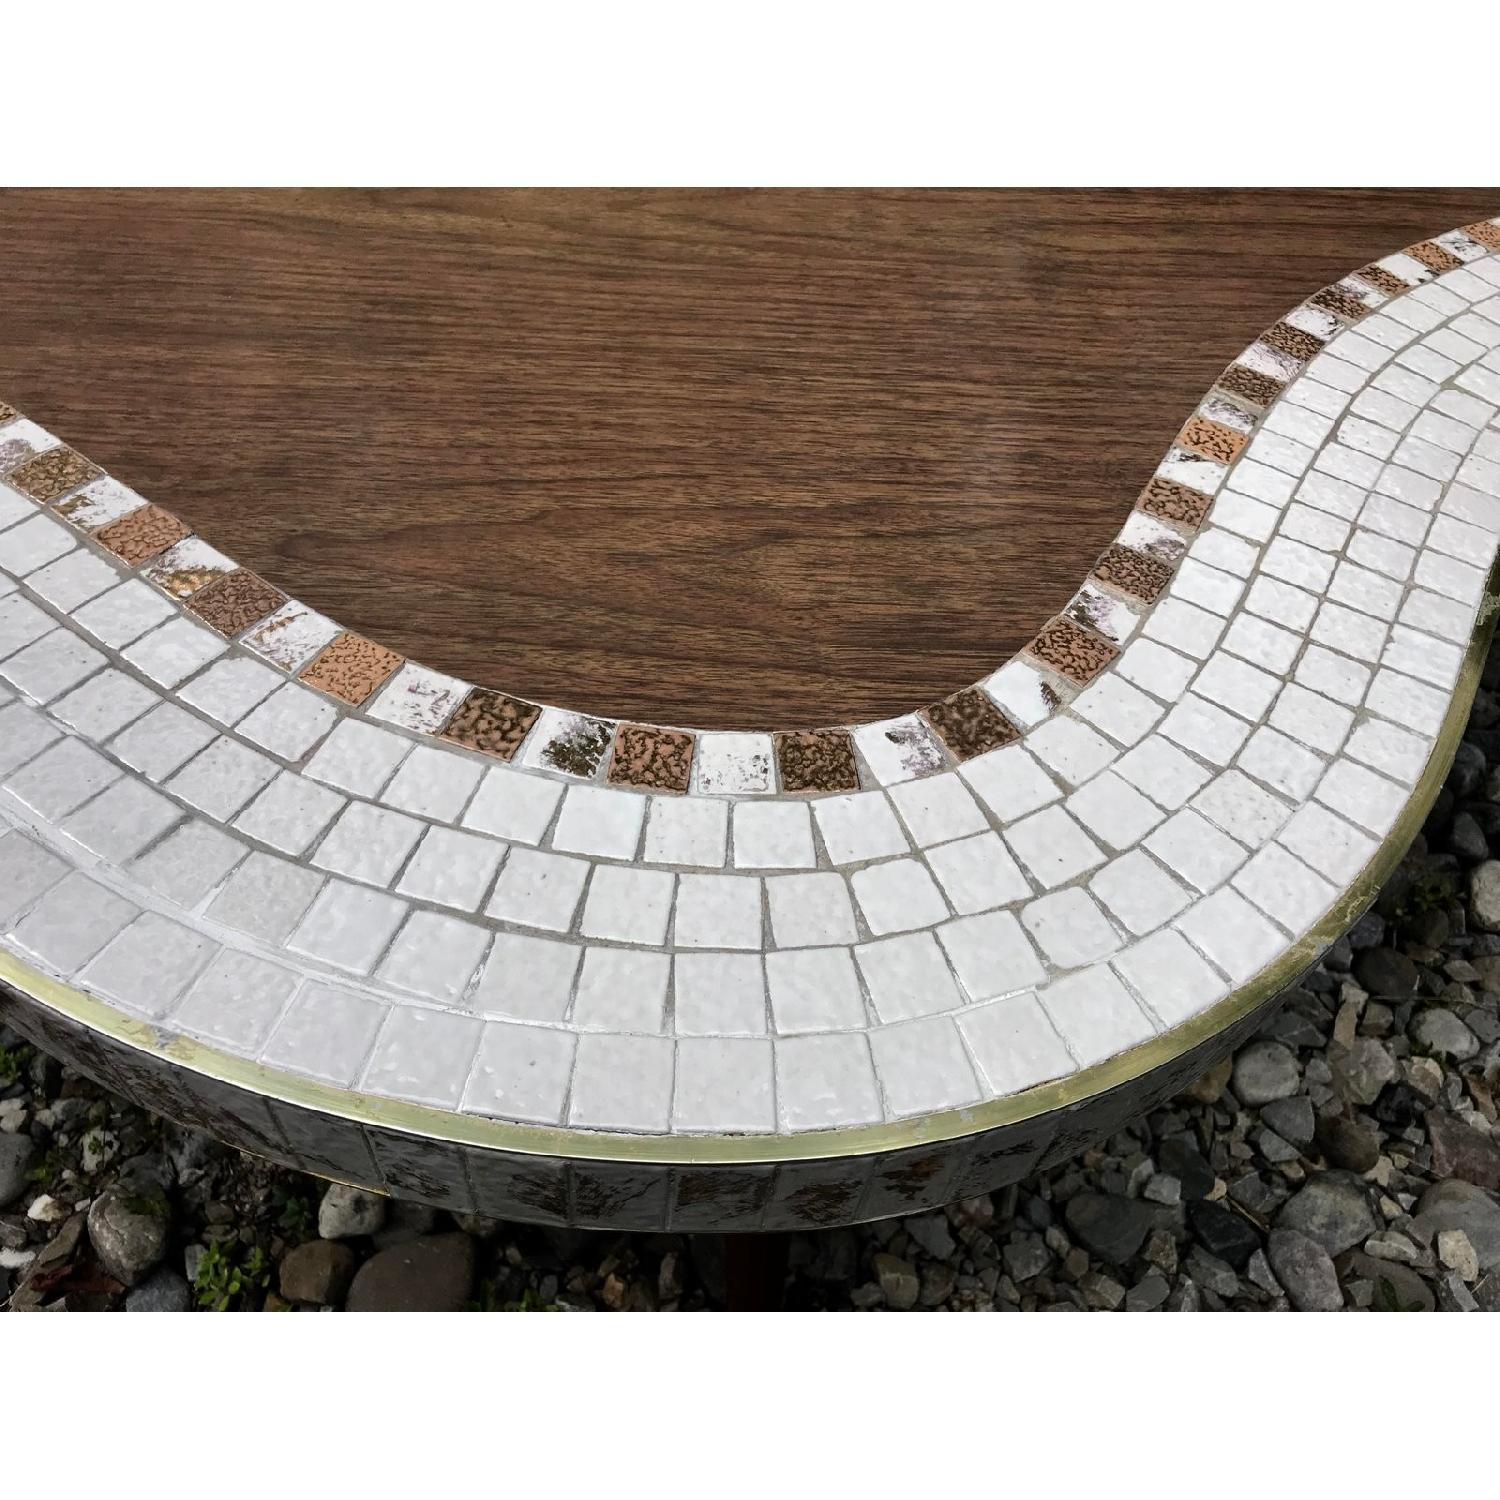 Biomorphic Kidney Style Mosaic Tile Mid Century Coffee Table